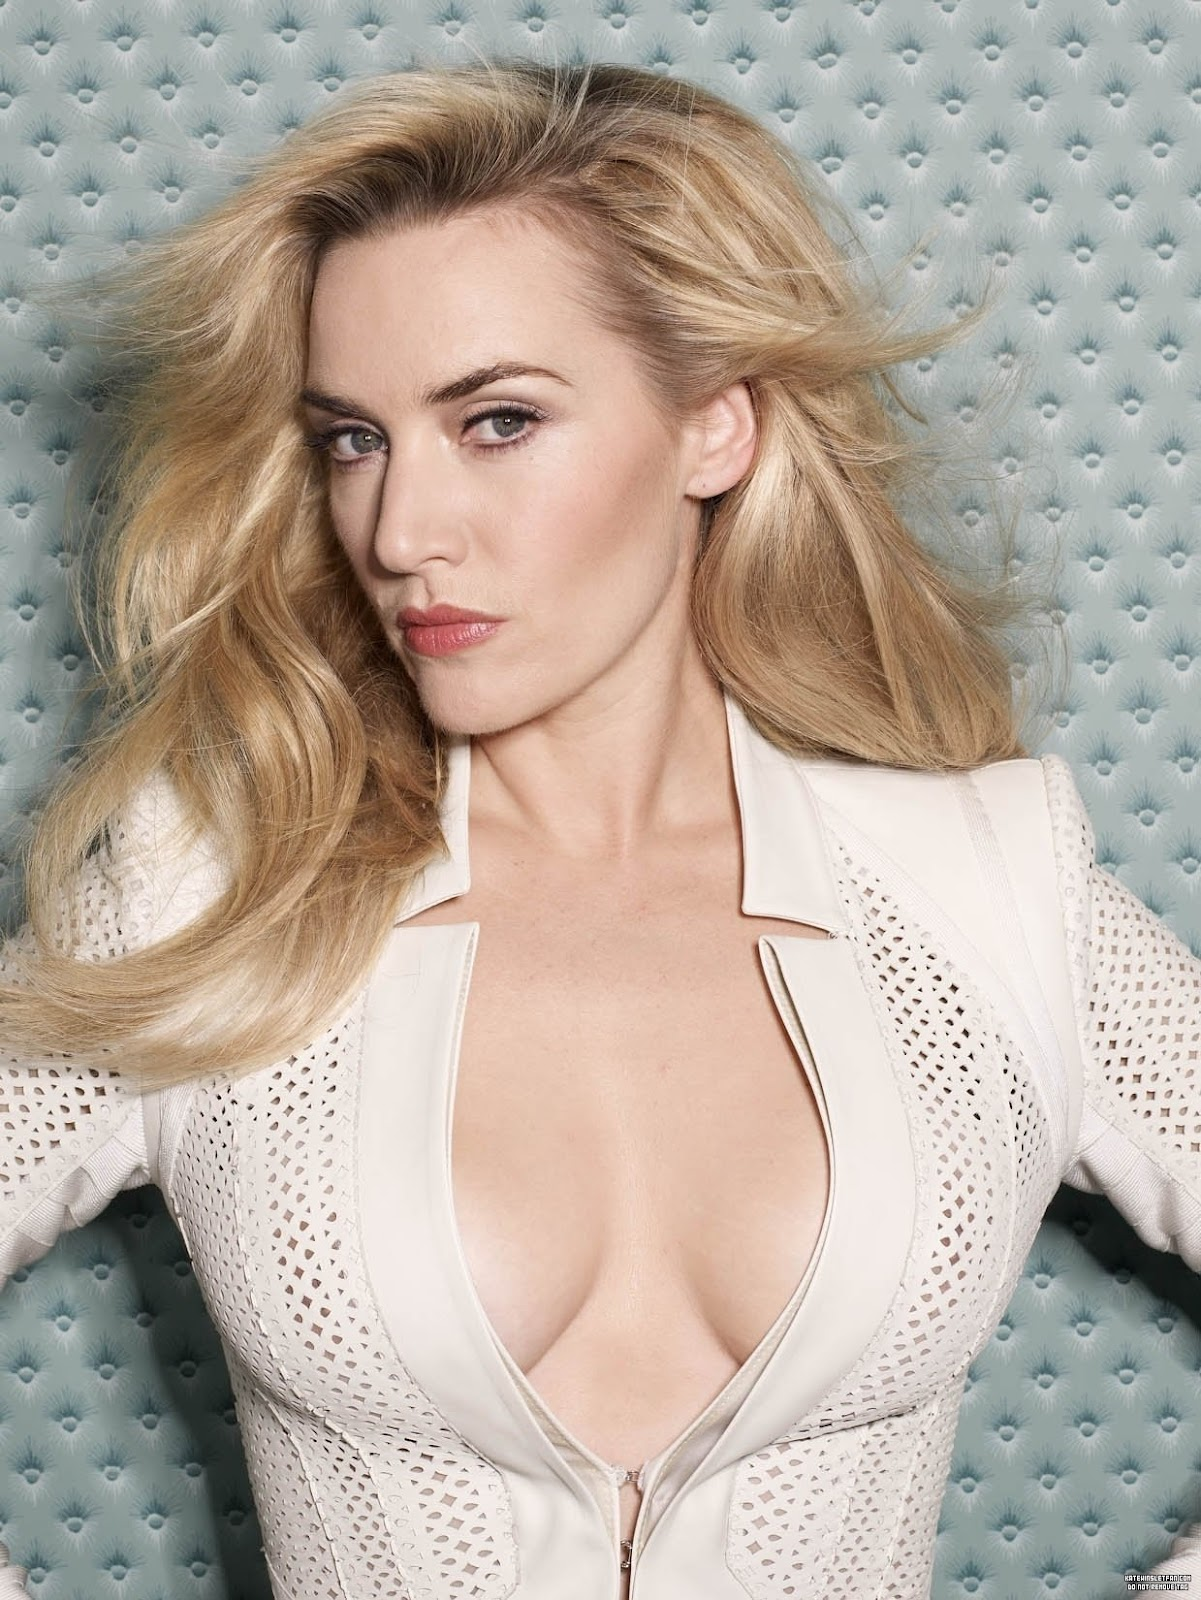 Kate Winslet Biography | Kate Winslet Wallpapers Kate Winslet